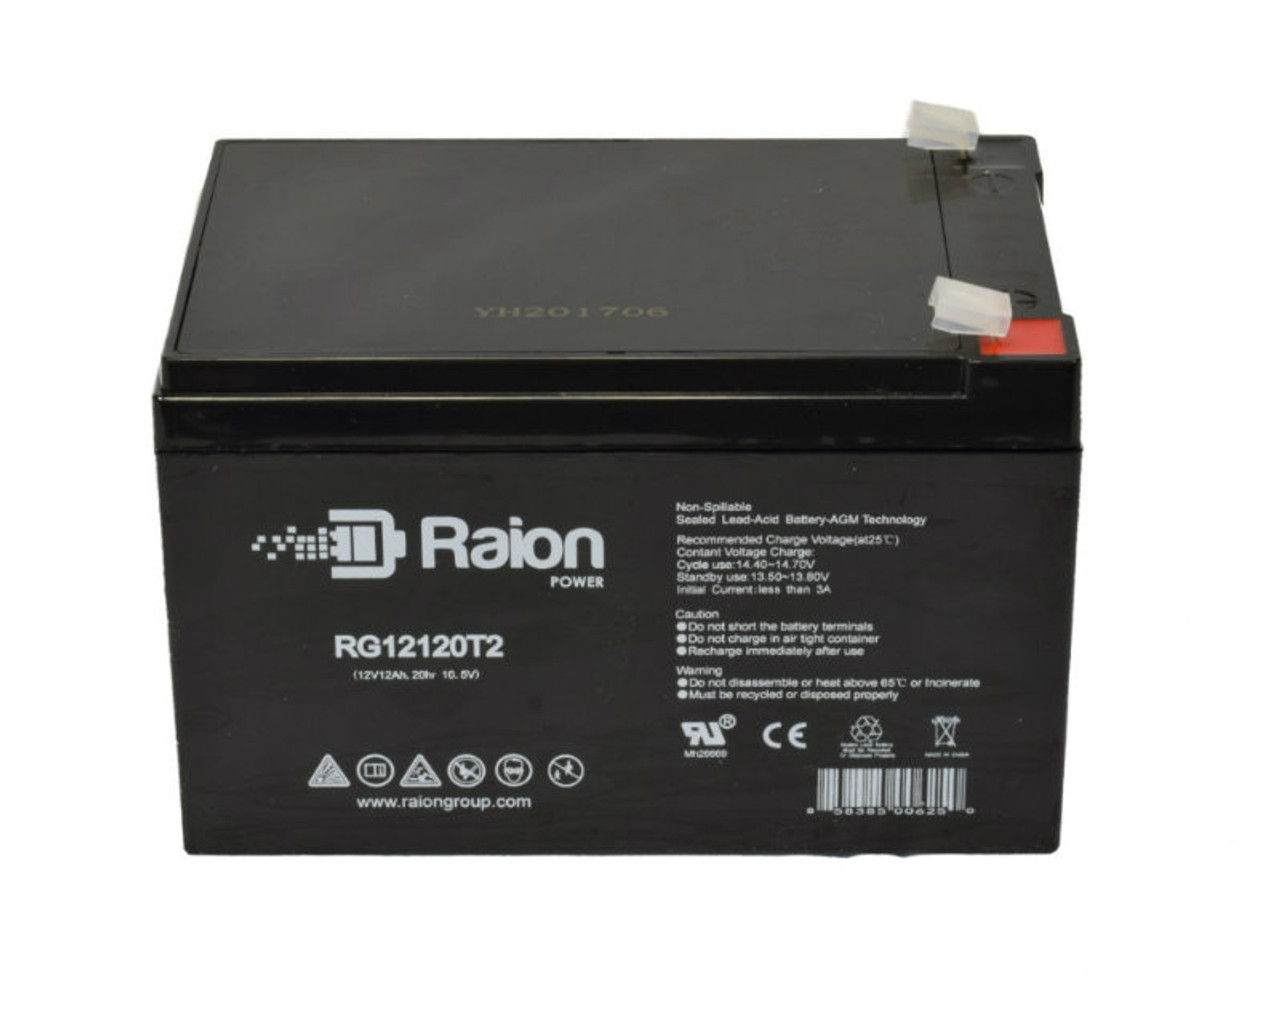 Raion Power RG12120T2 12V 12Ah Battery for Ademco PWPS12120 Fire Alarm Control Panel